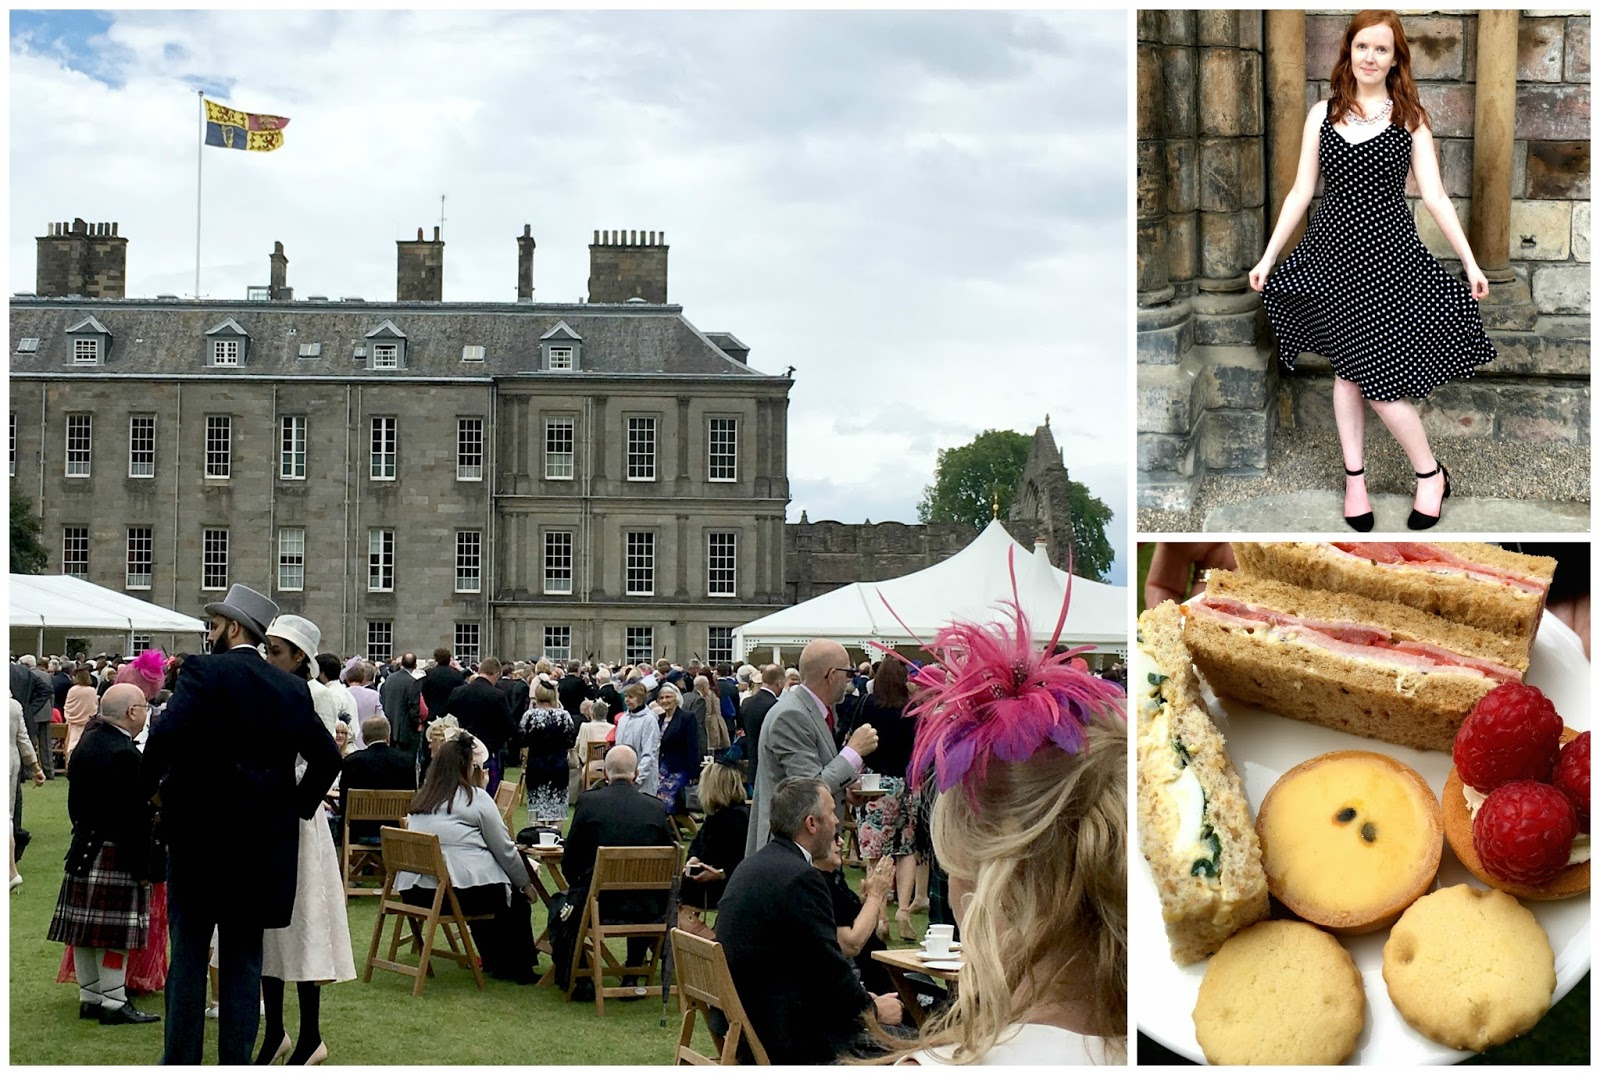 The Queen's Garden Party at Holyroodhouse Edinburgh